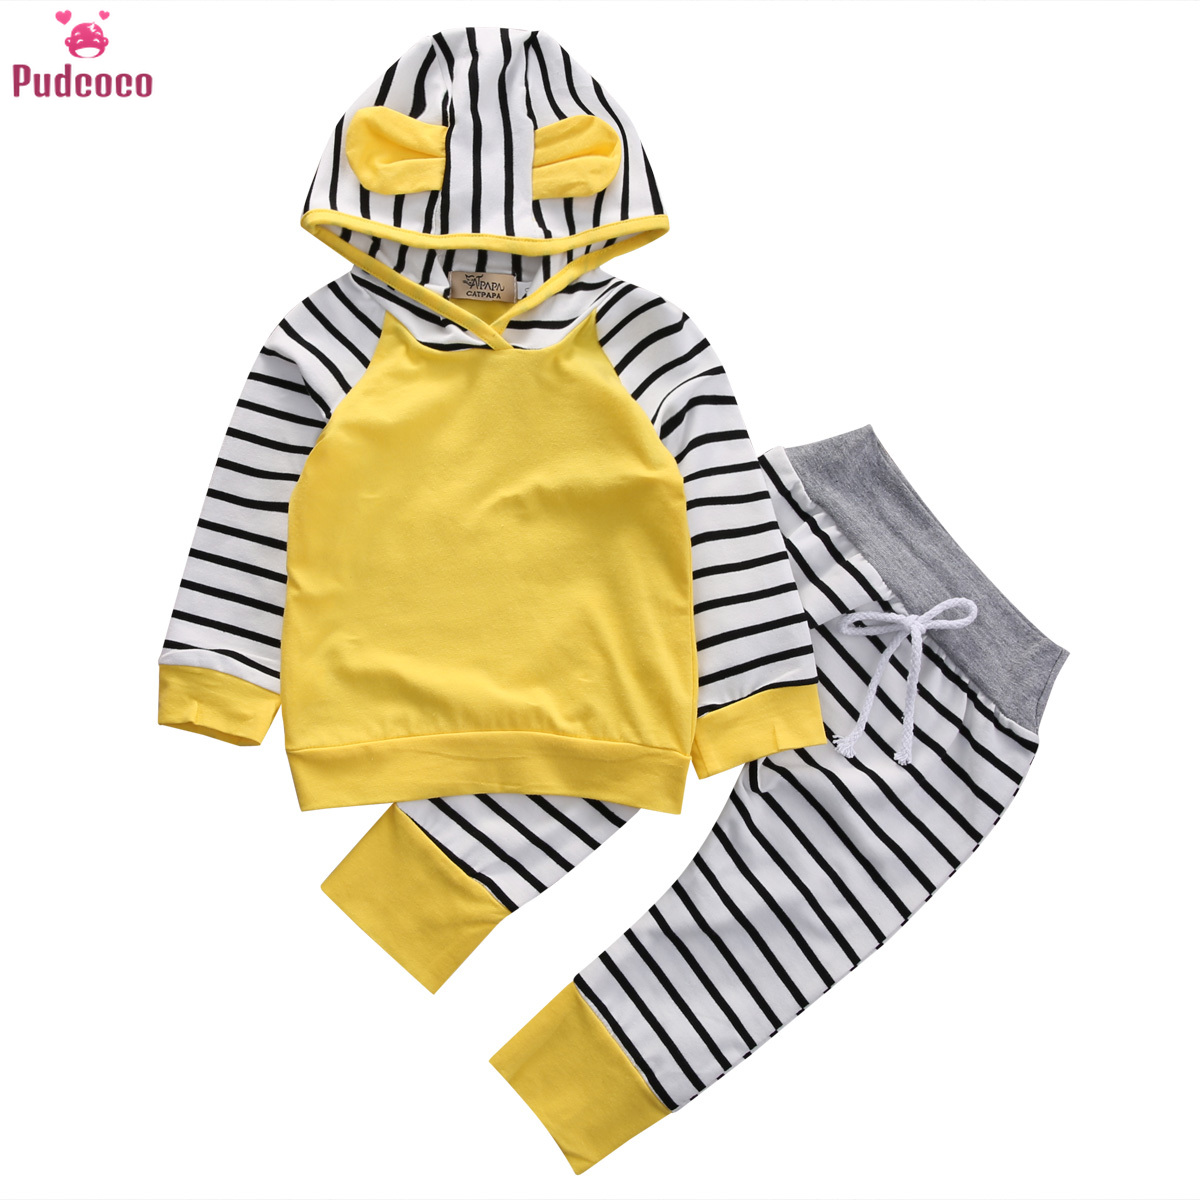 Infant Newborn Baby Boy Girl Clothes Set Striped Hooded Sweatshirt And Long Pants Outfits 2 Pieces Set Kids Clothing